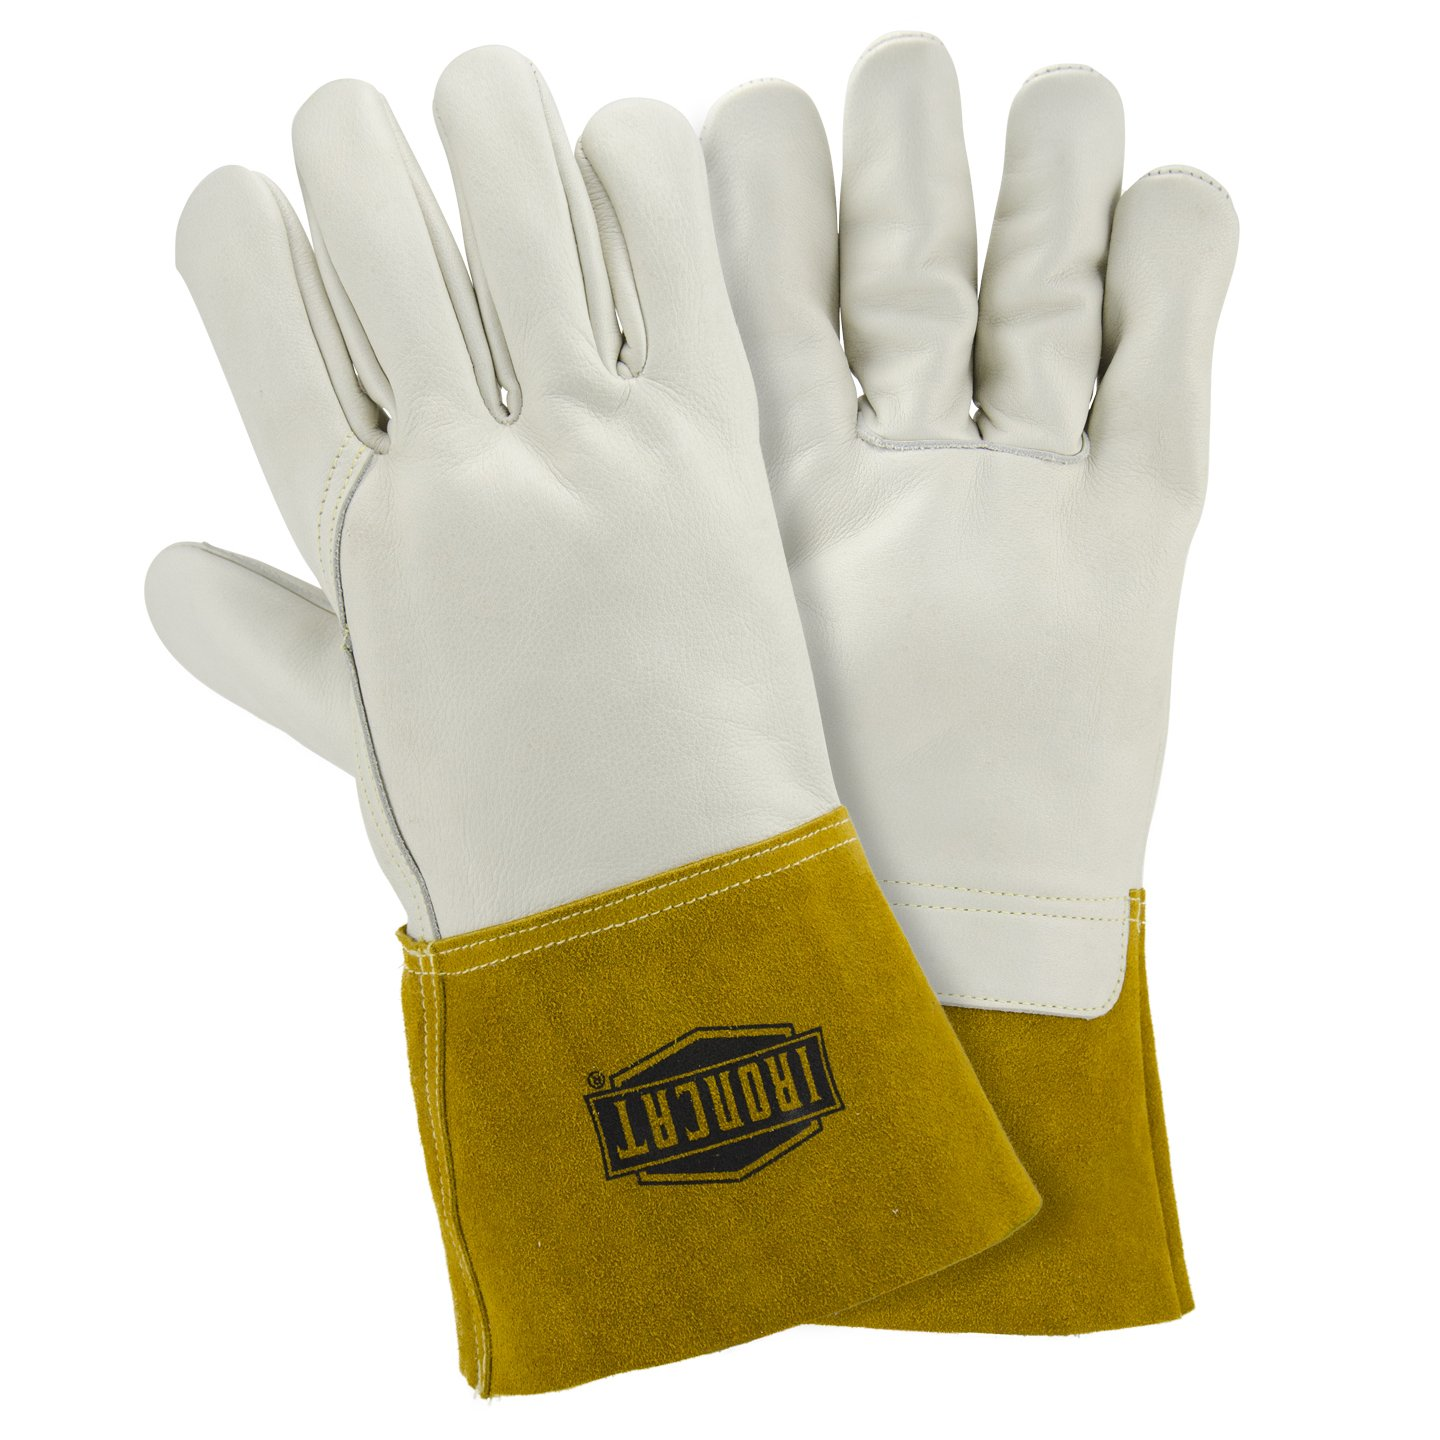 West Chester IRONCAT 6010 Premium Top Grain Cowhide Leather MIG Welding Gloves: Large, 12 Pairs